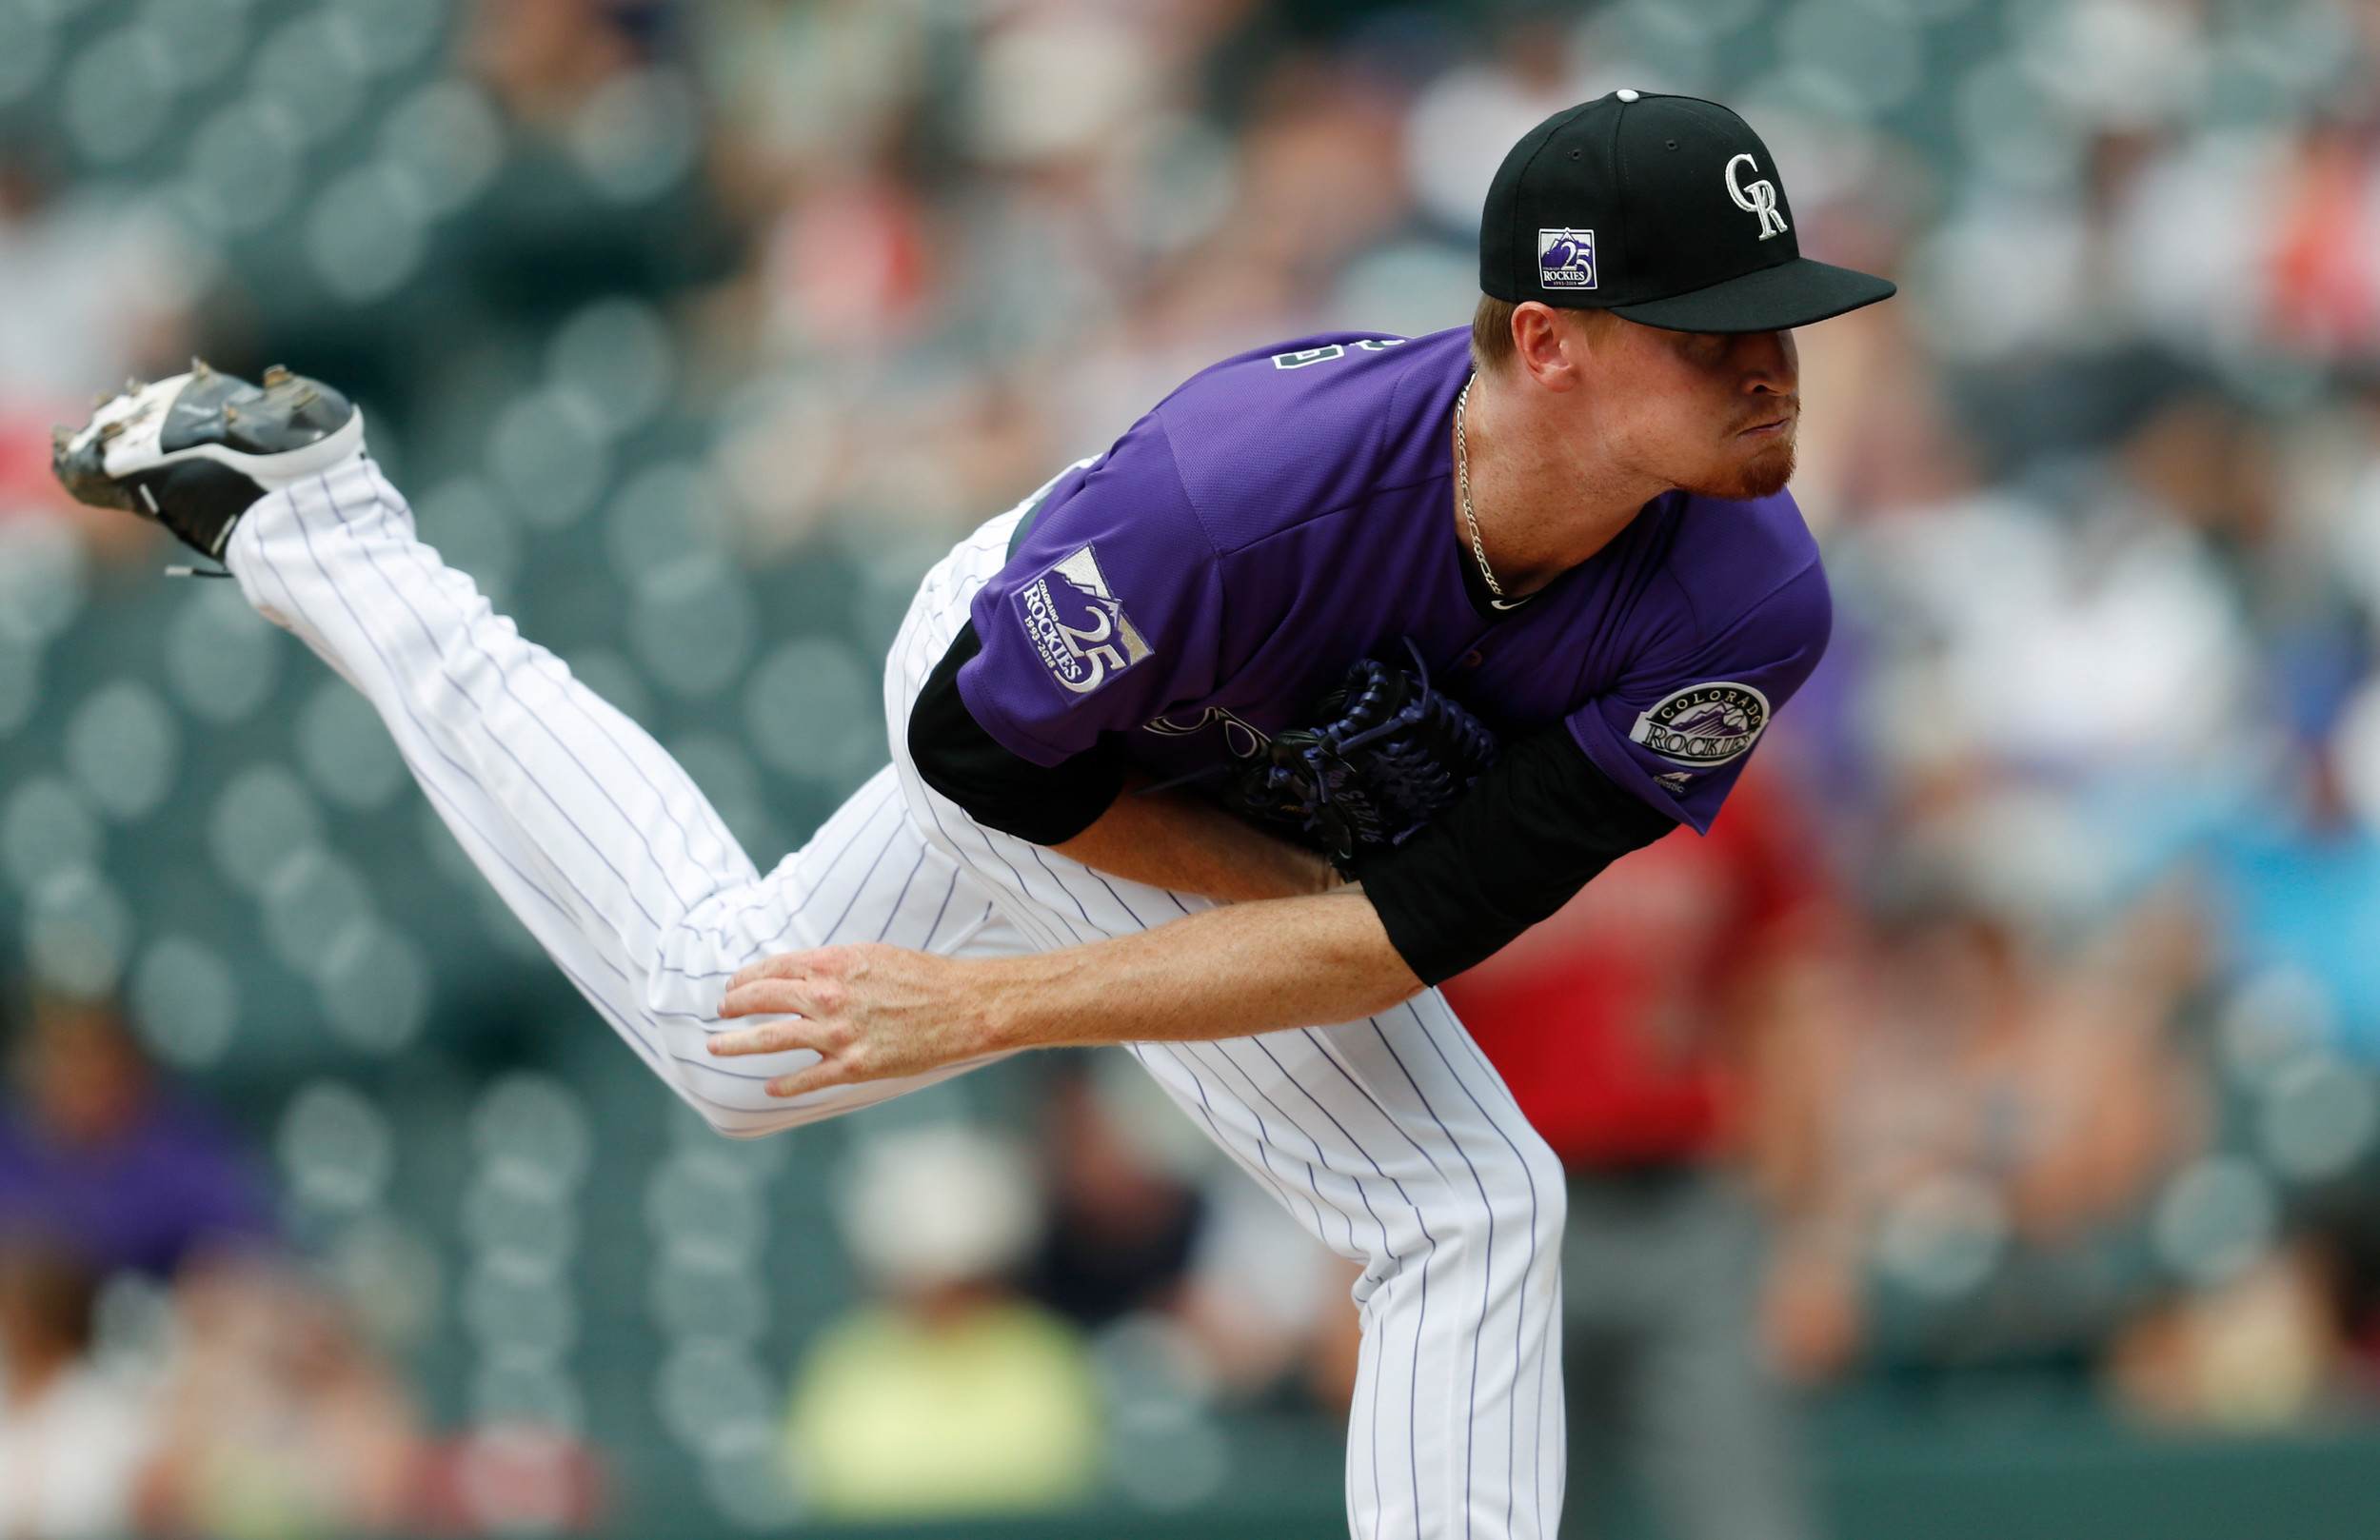 Colorado Rockies relief pitcher Sam Howard delivers a pitch to Arizona Diamondbacks' Ketel Marte in the ninth inning of a baseball game Sunday in Denver. The scoreless outing marked the MLB debut for Howard, who graduated from Cartersville High in 2011.